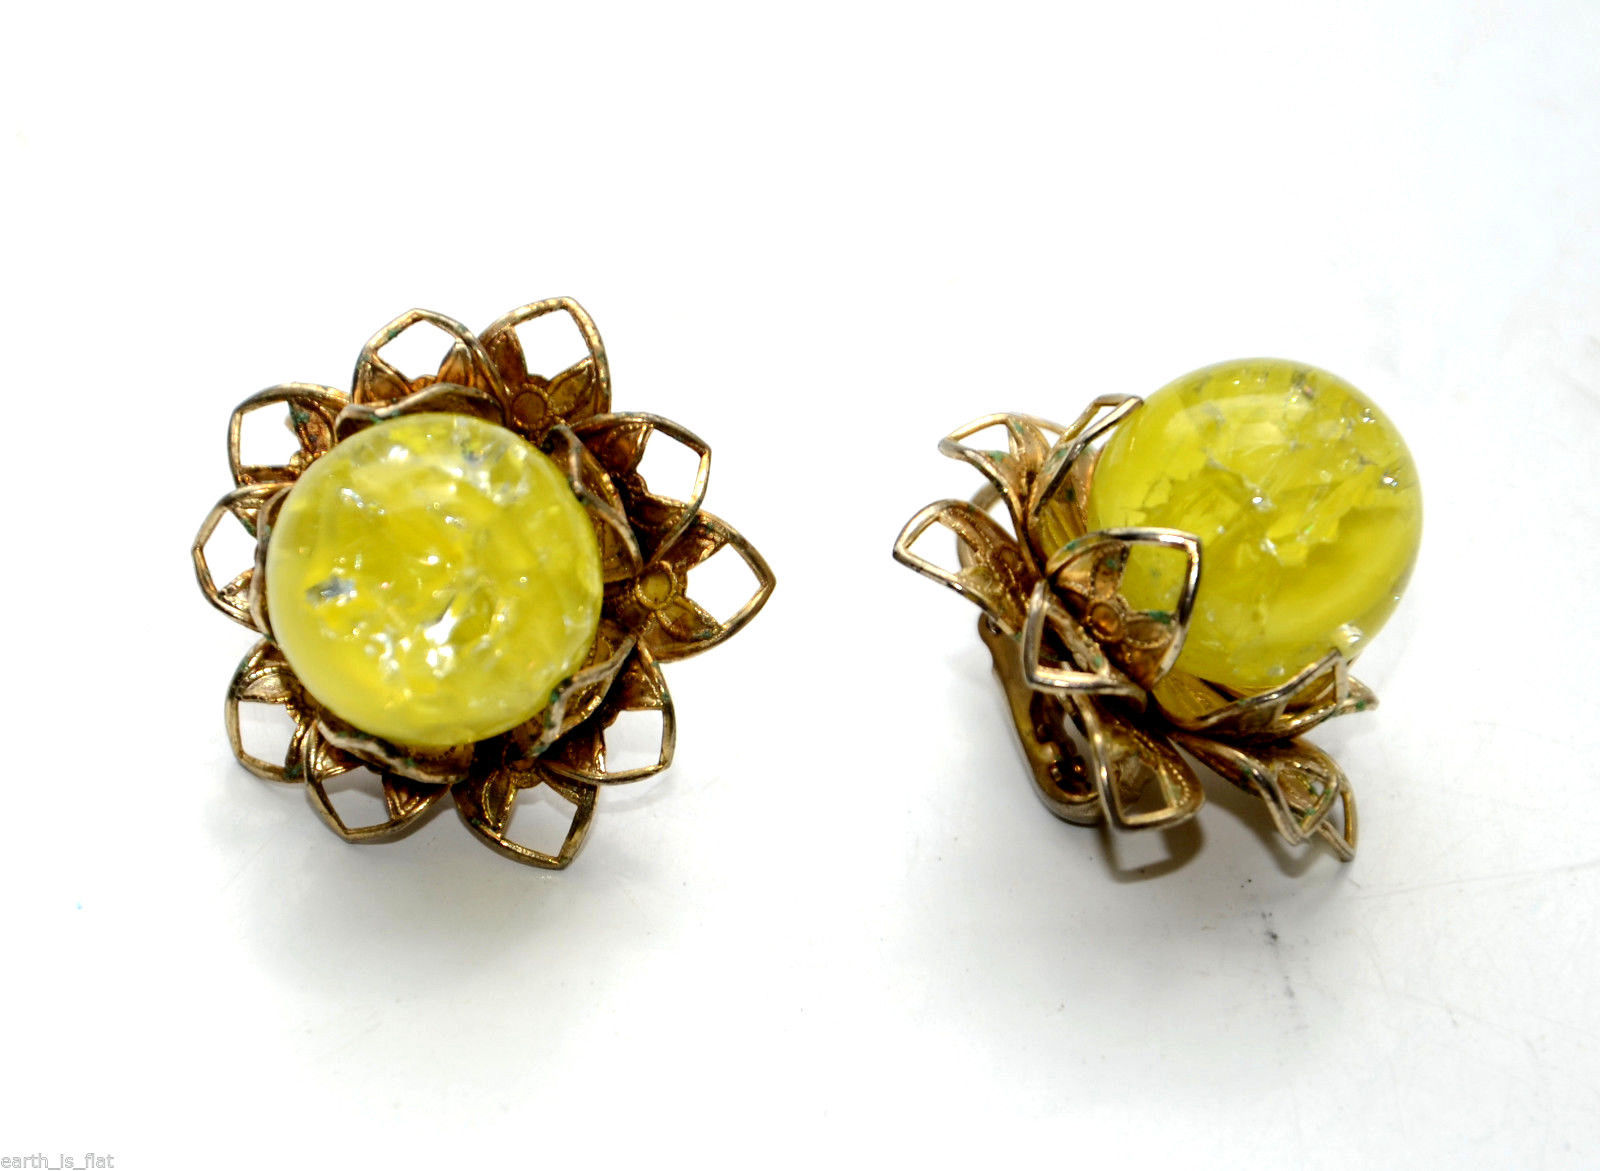 Primary image for vintage clip earrings yellow lucite cab cabochon flower floral